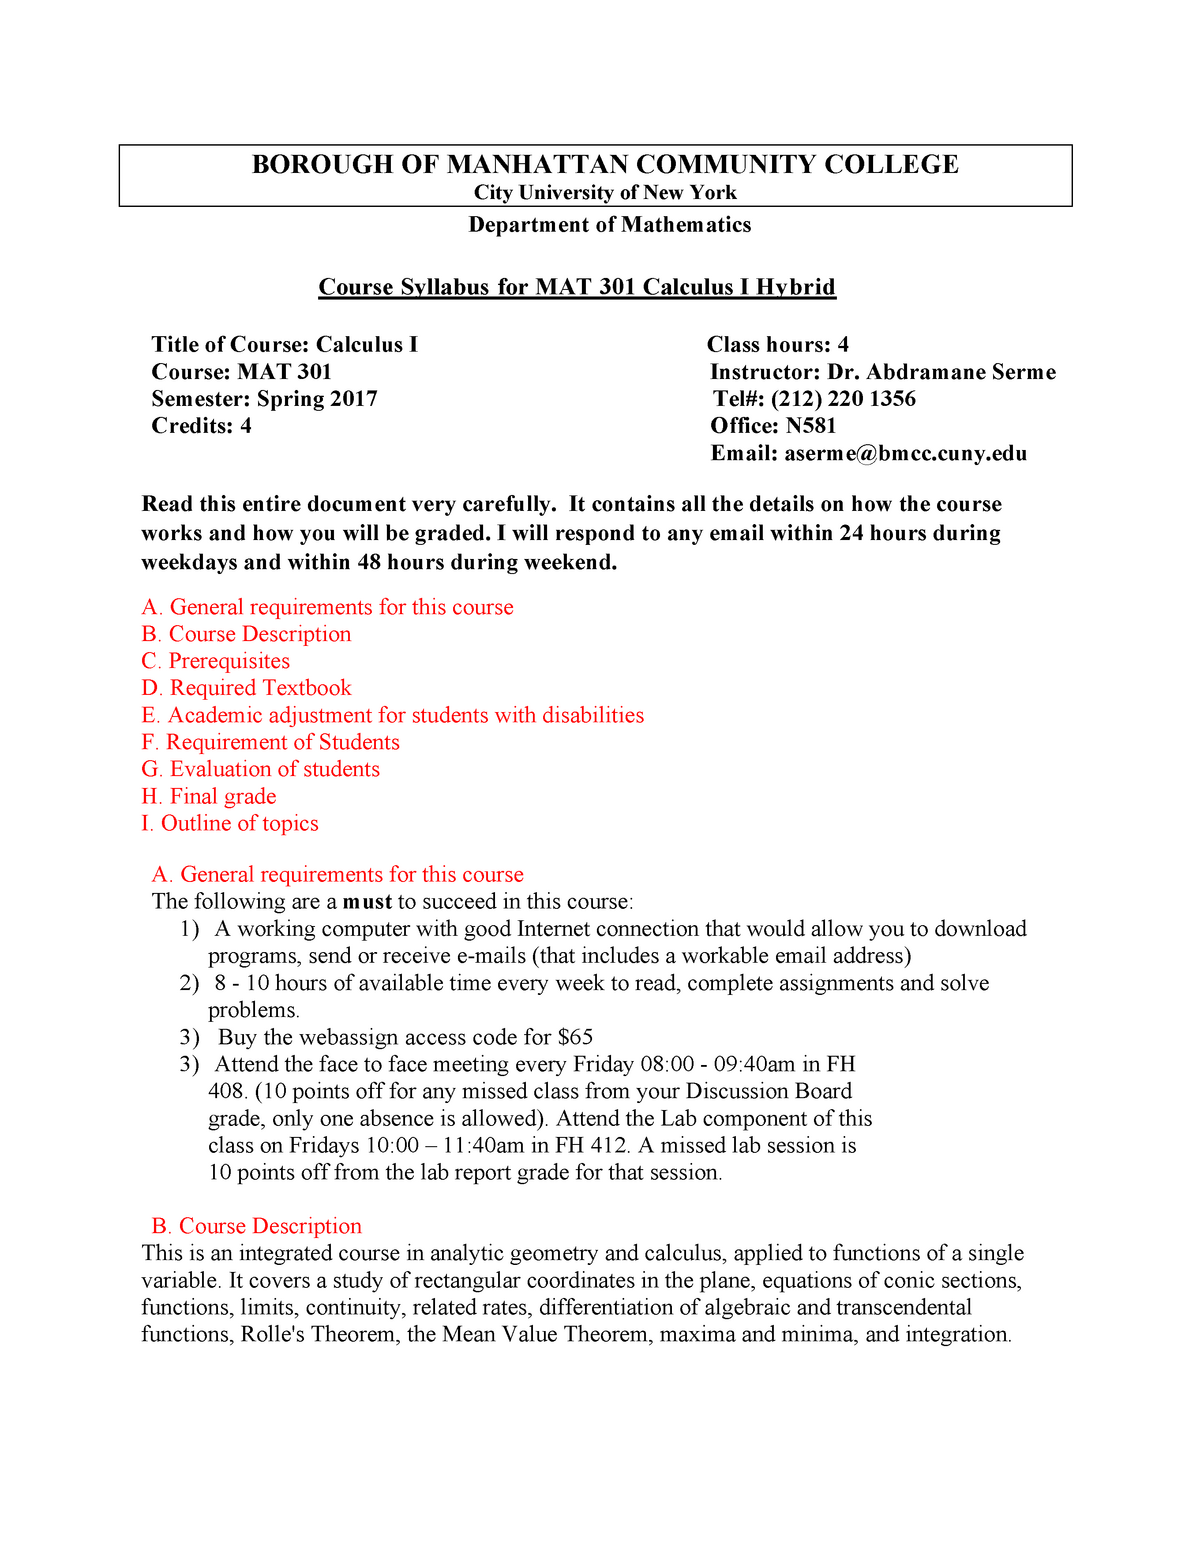 Course Syllabus for Hybrid Calculus I MAT 301-0802 spring